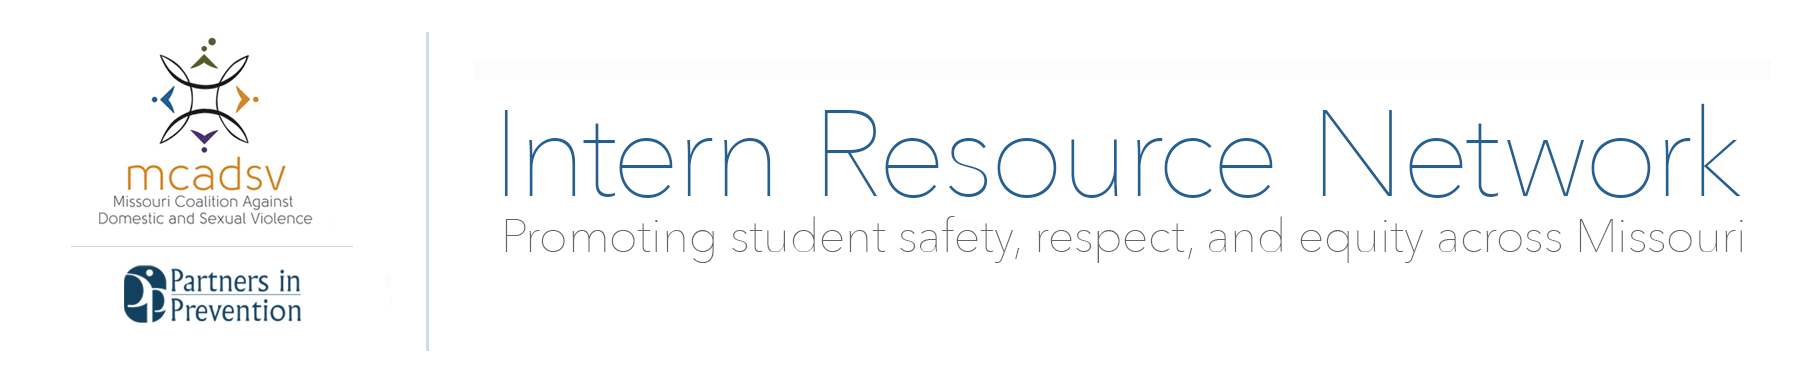 Intern resource network